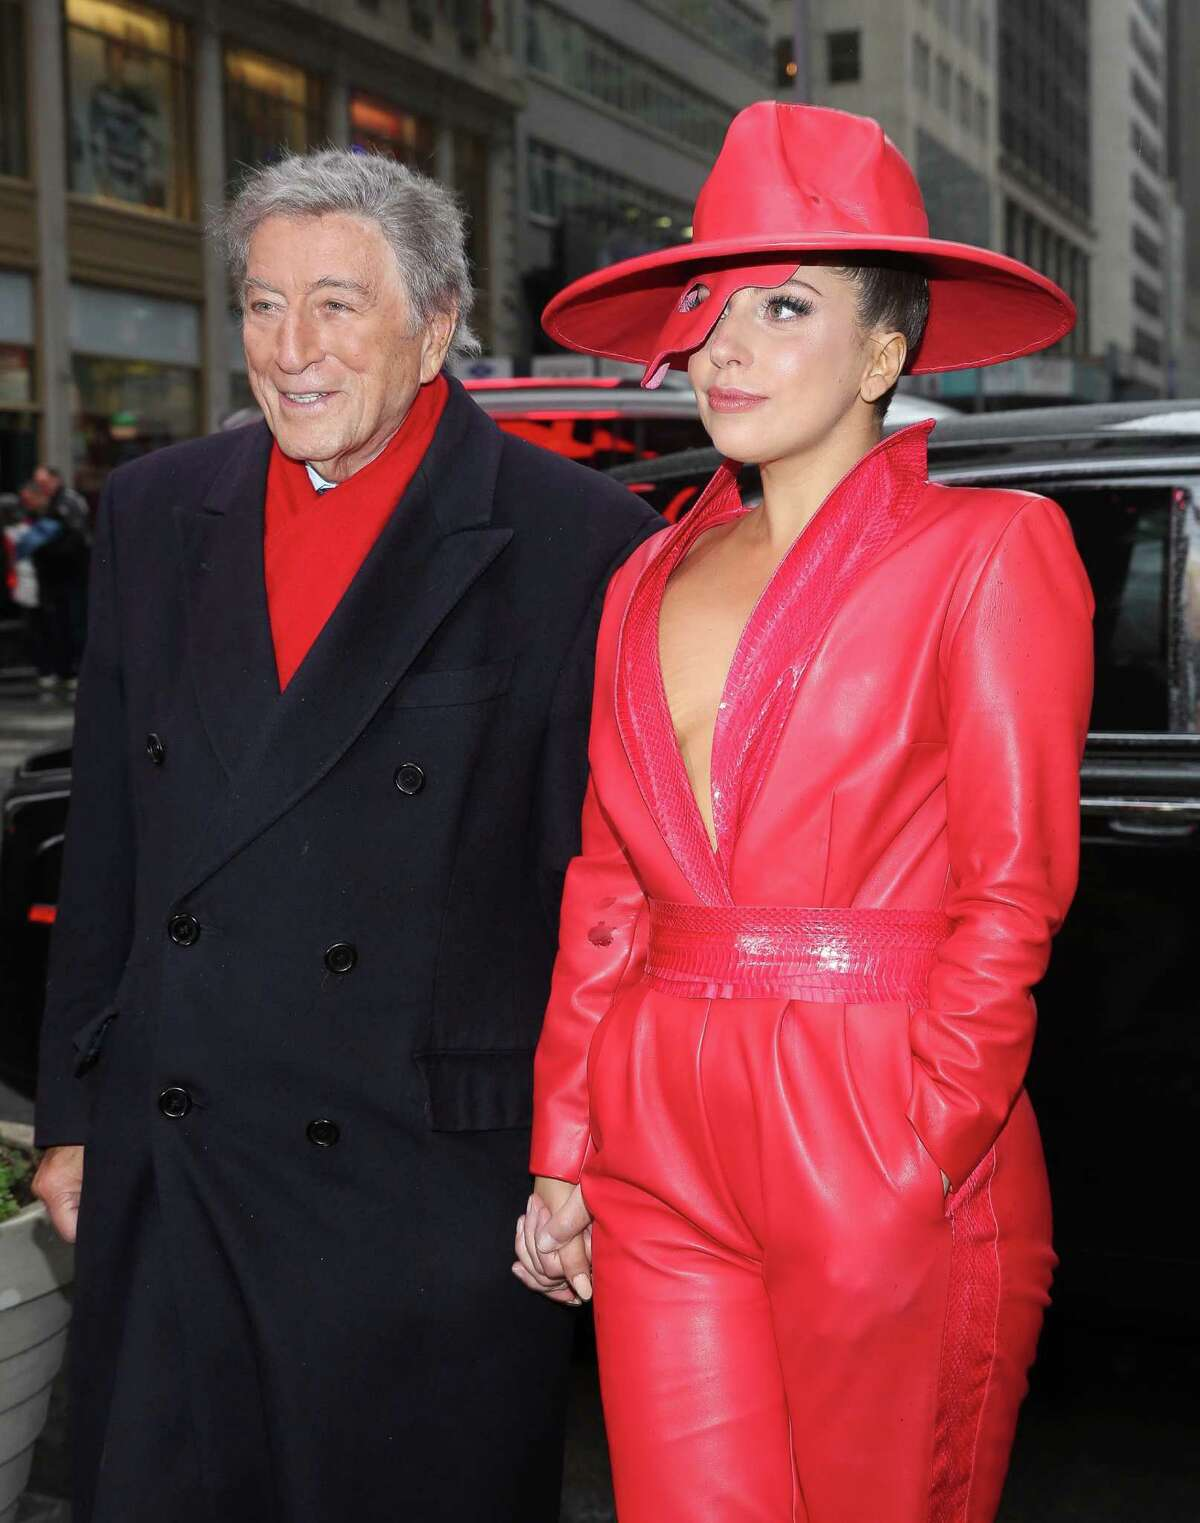 Tony Bennett and Lady Gaga will perform May 28 at the Concord Pavilion.